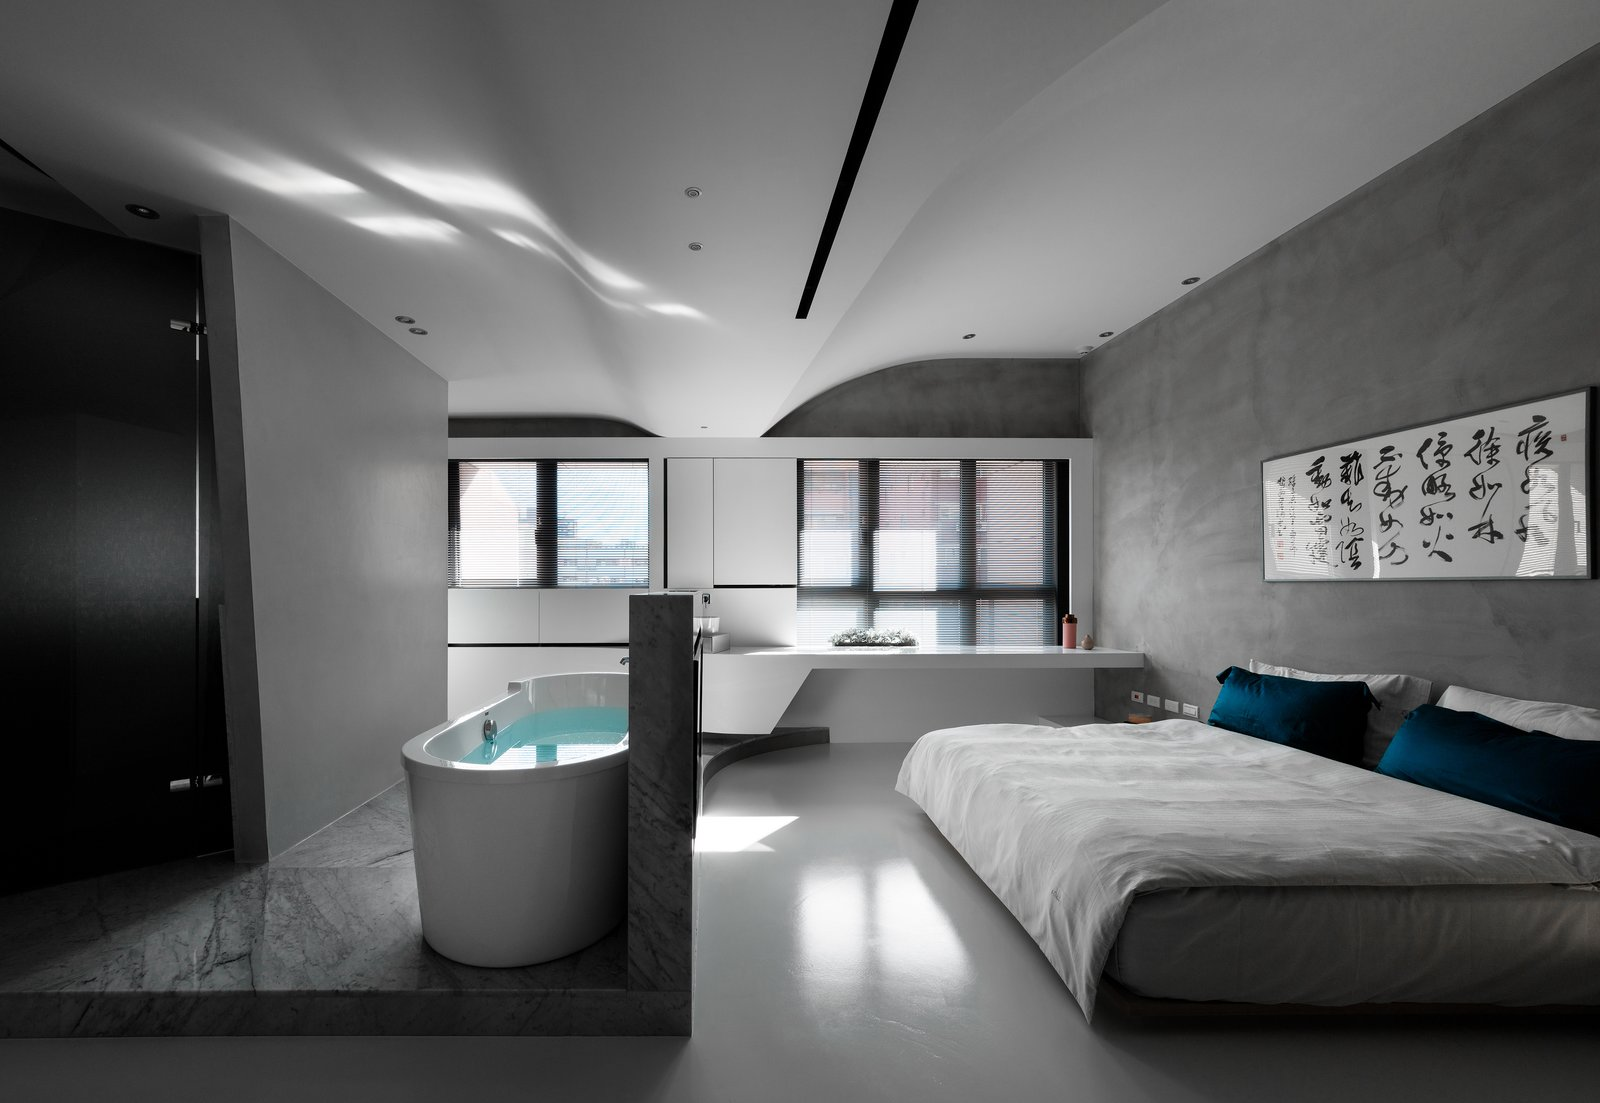 The bathtub splits from the bathroom and is separately located in the middle, diverting the circulation around it. Tagged: Bedroom, Ceiling Lighting, Marble Floor, Bed, and Concrete Floor.  Fluid House by shi-chieh lu